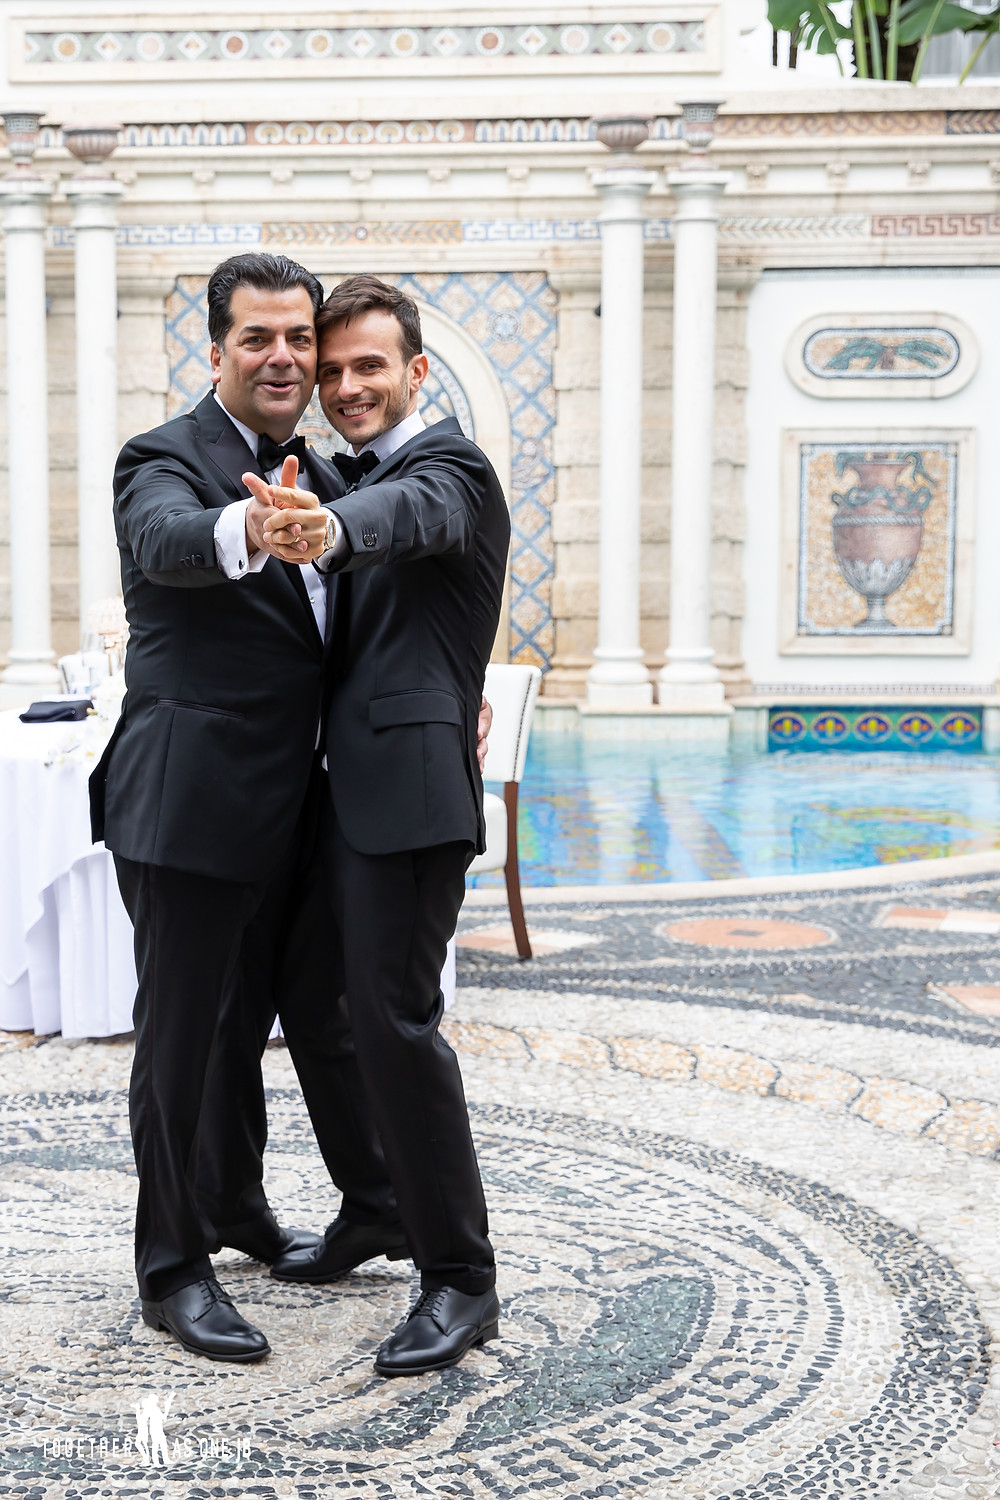 Wedding couple dance in front of Versace Mansion pool